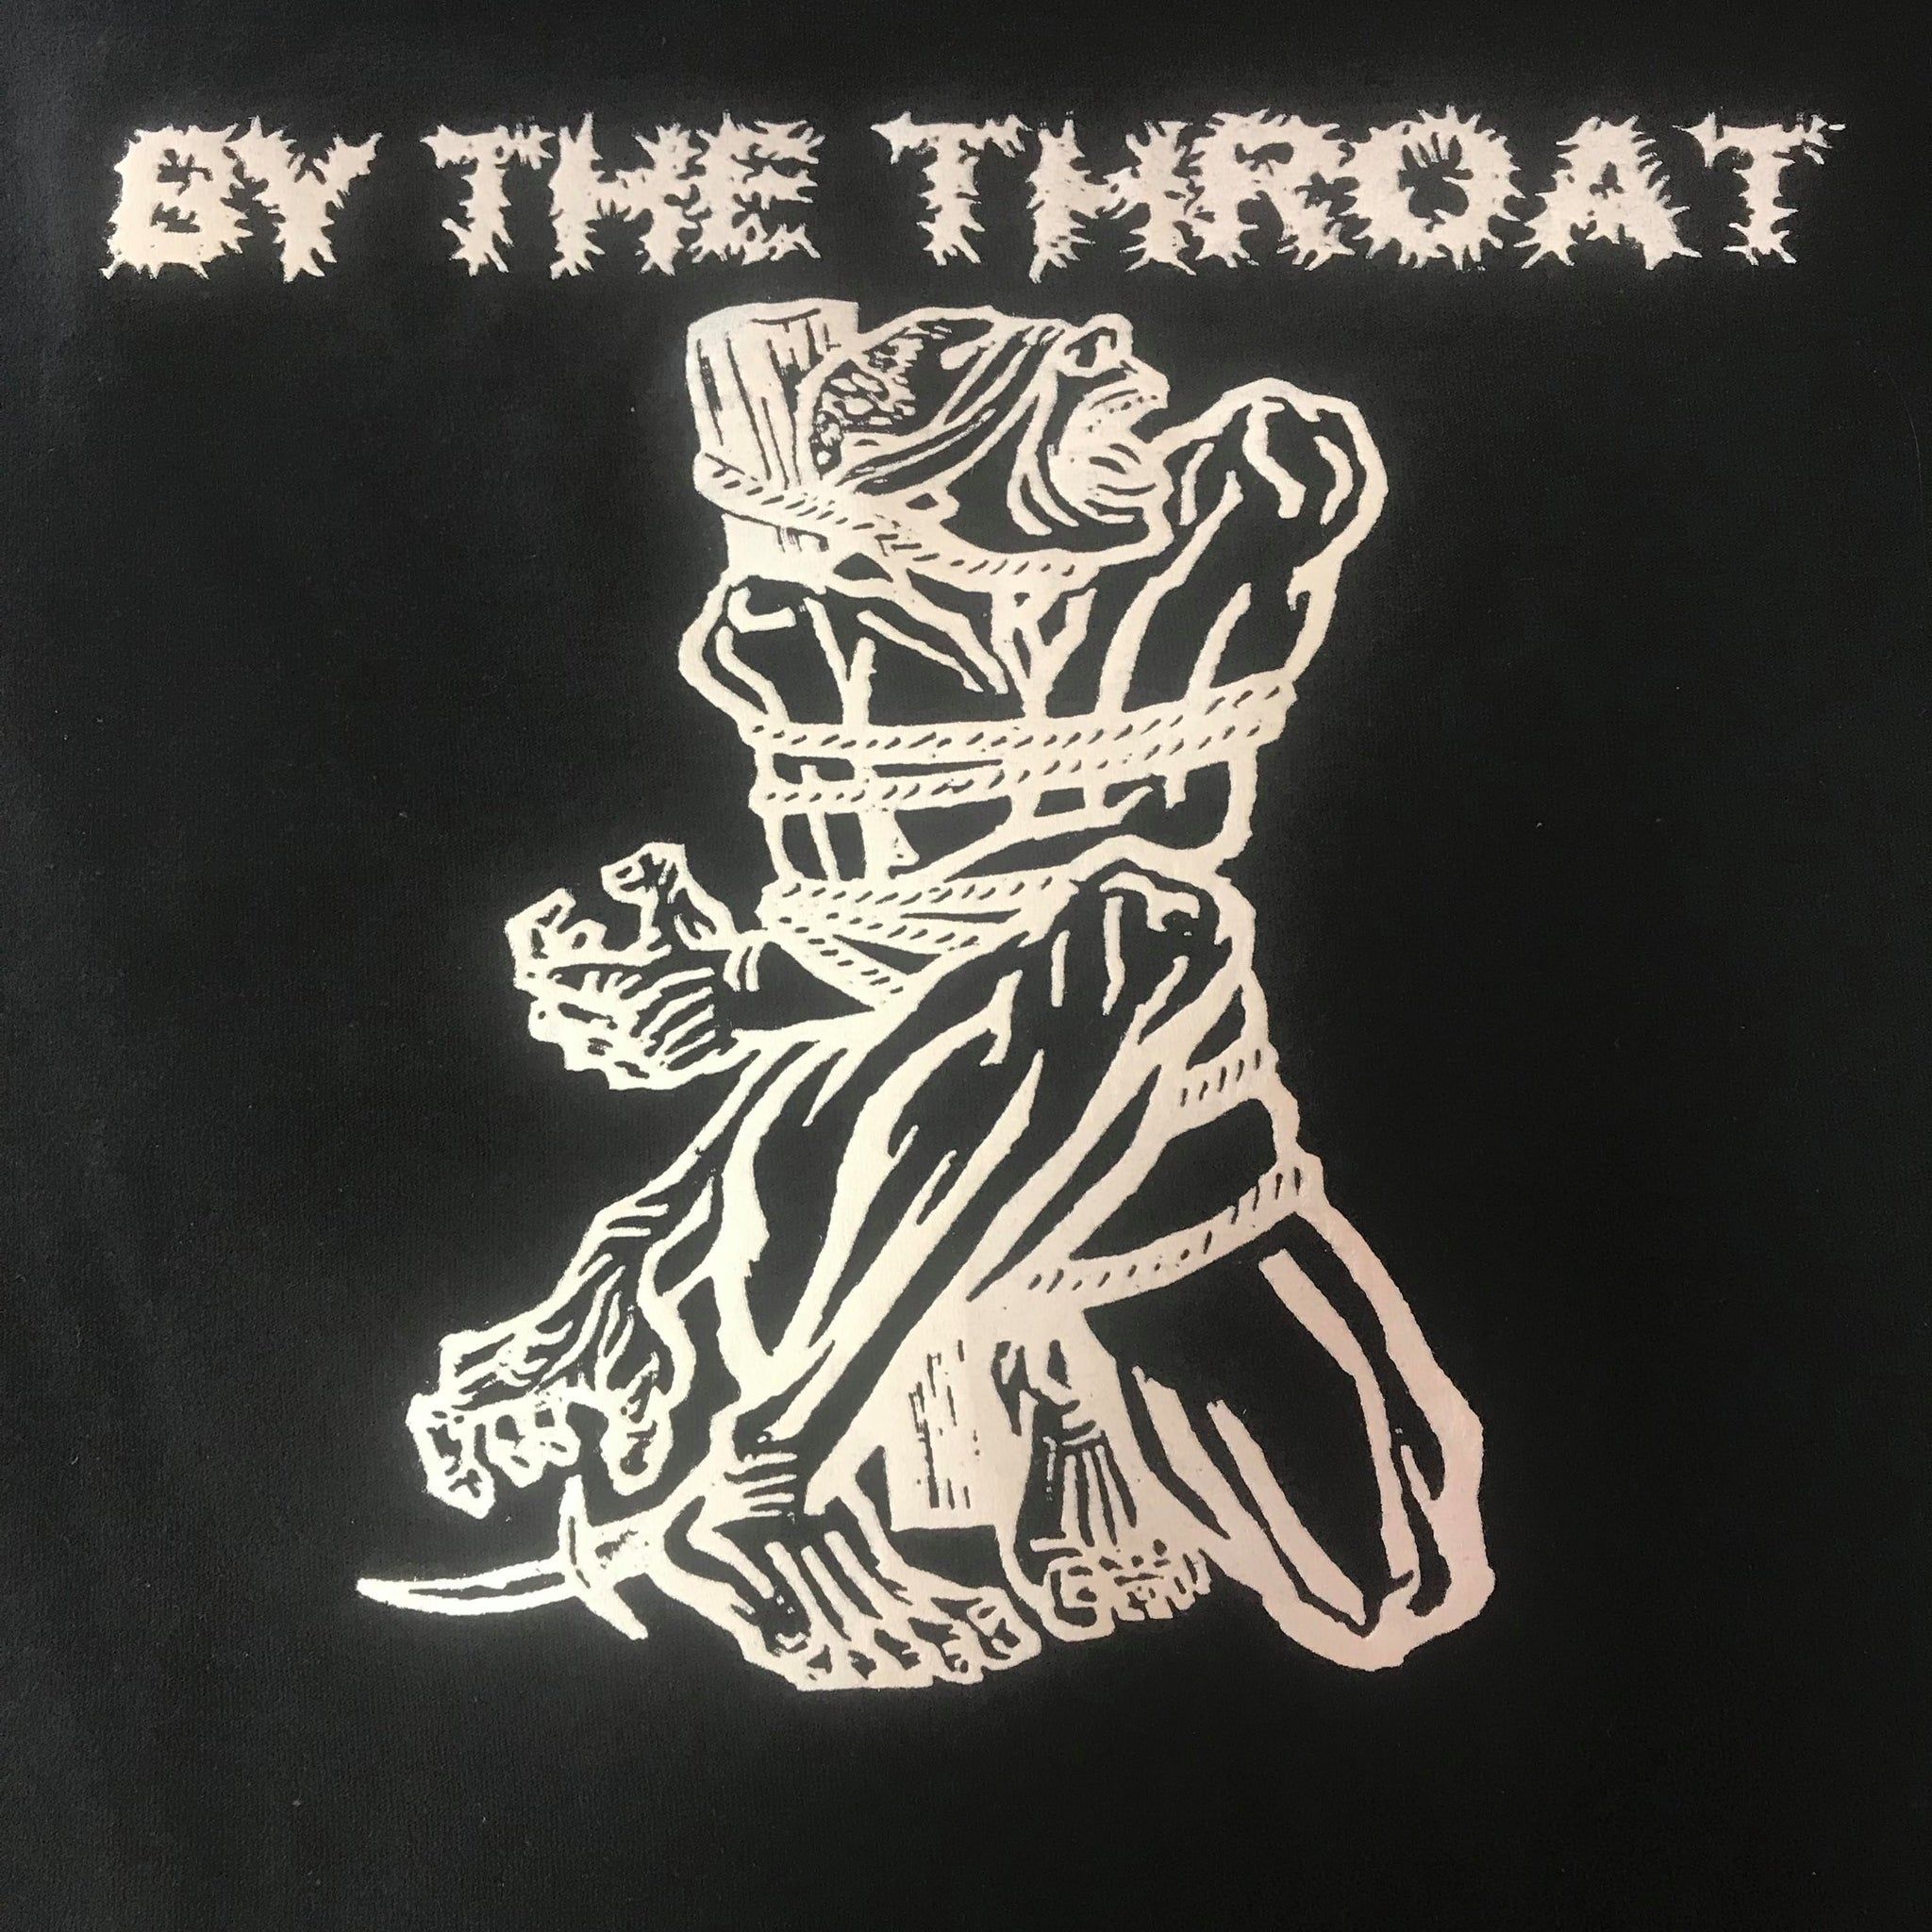 By The Throat - Shirt